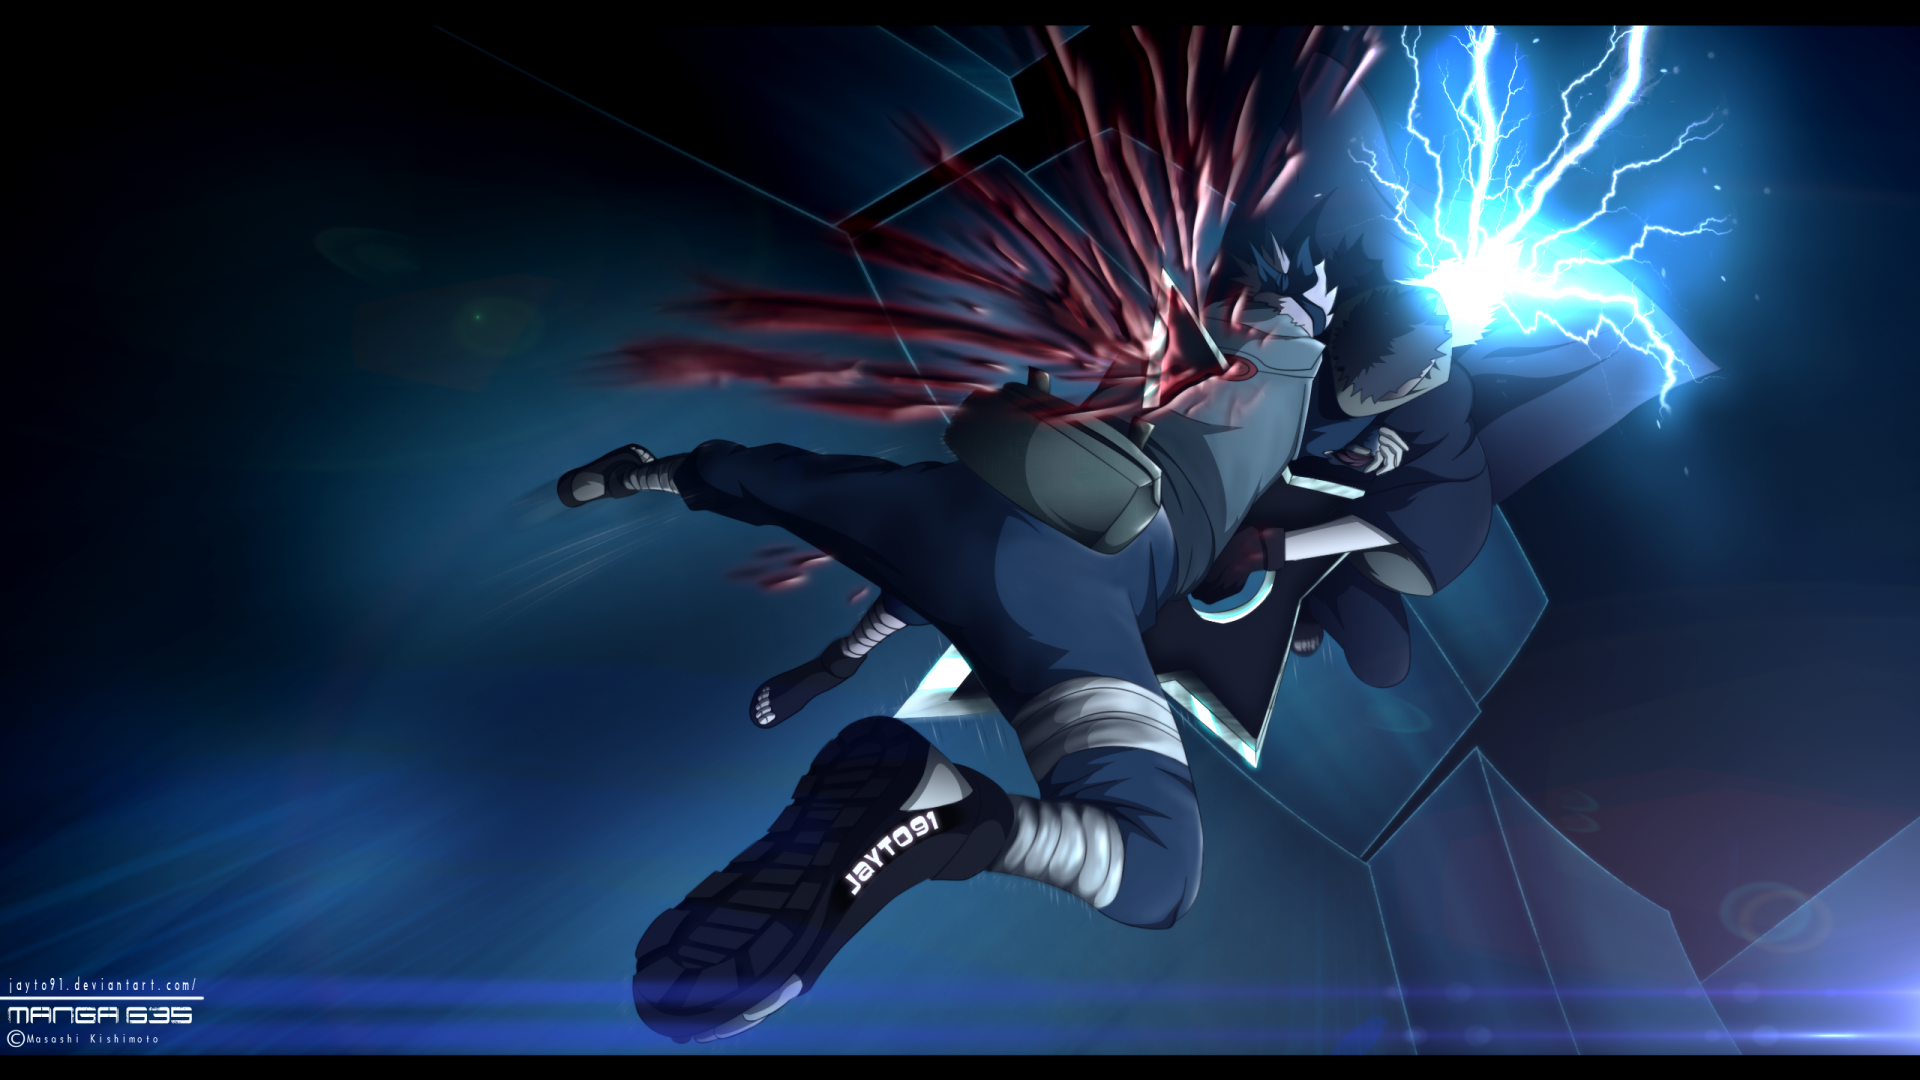 382 Obito Uchiha Hd Wallpapers Background Images Wallpaper Abyss Page 4